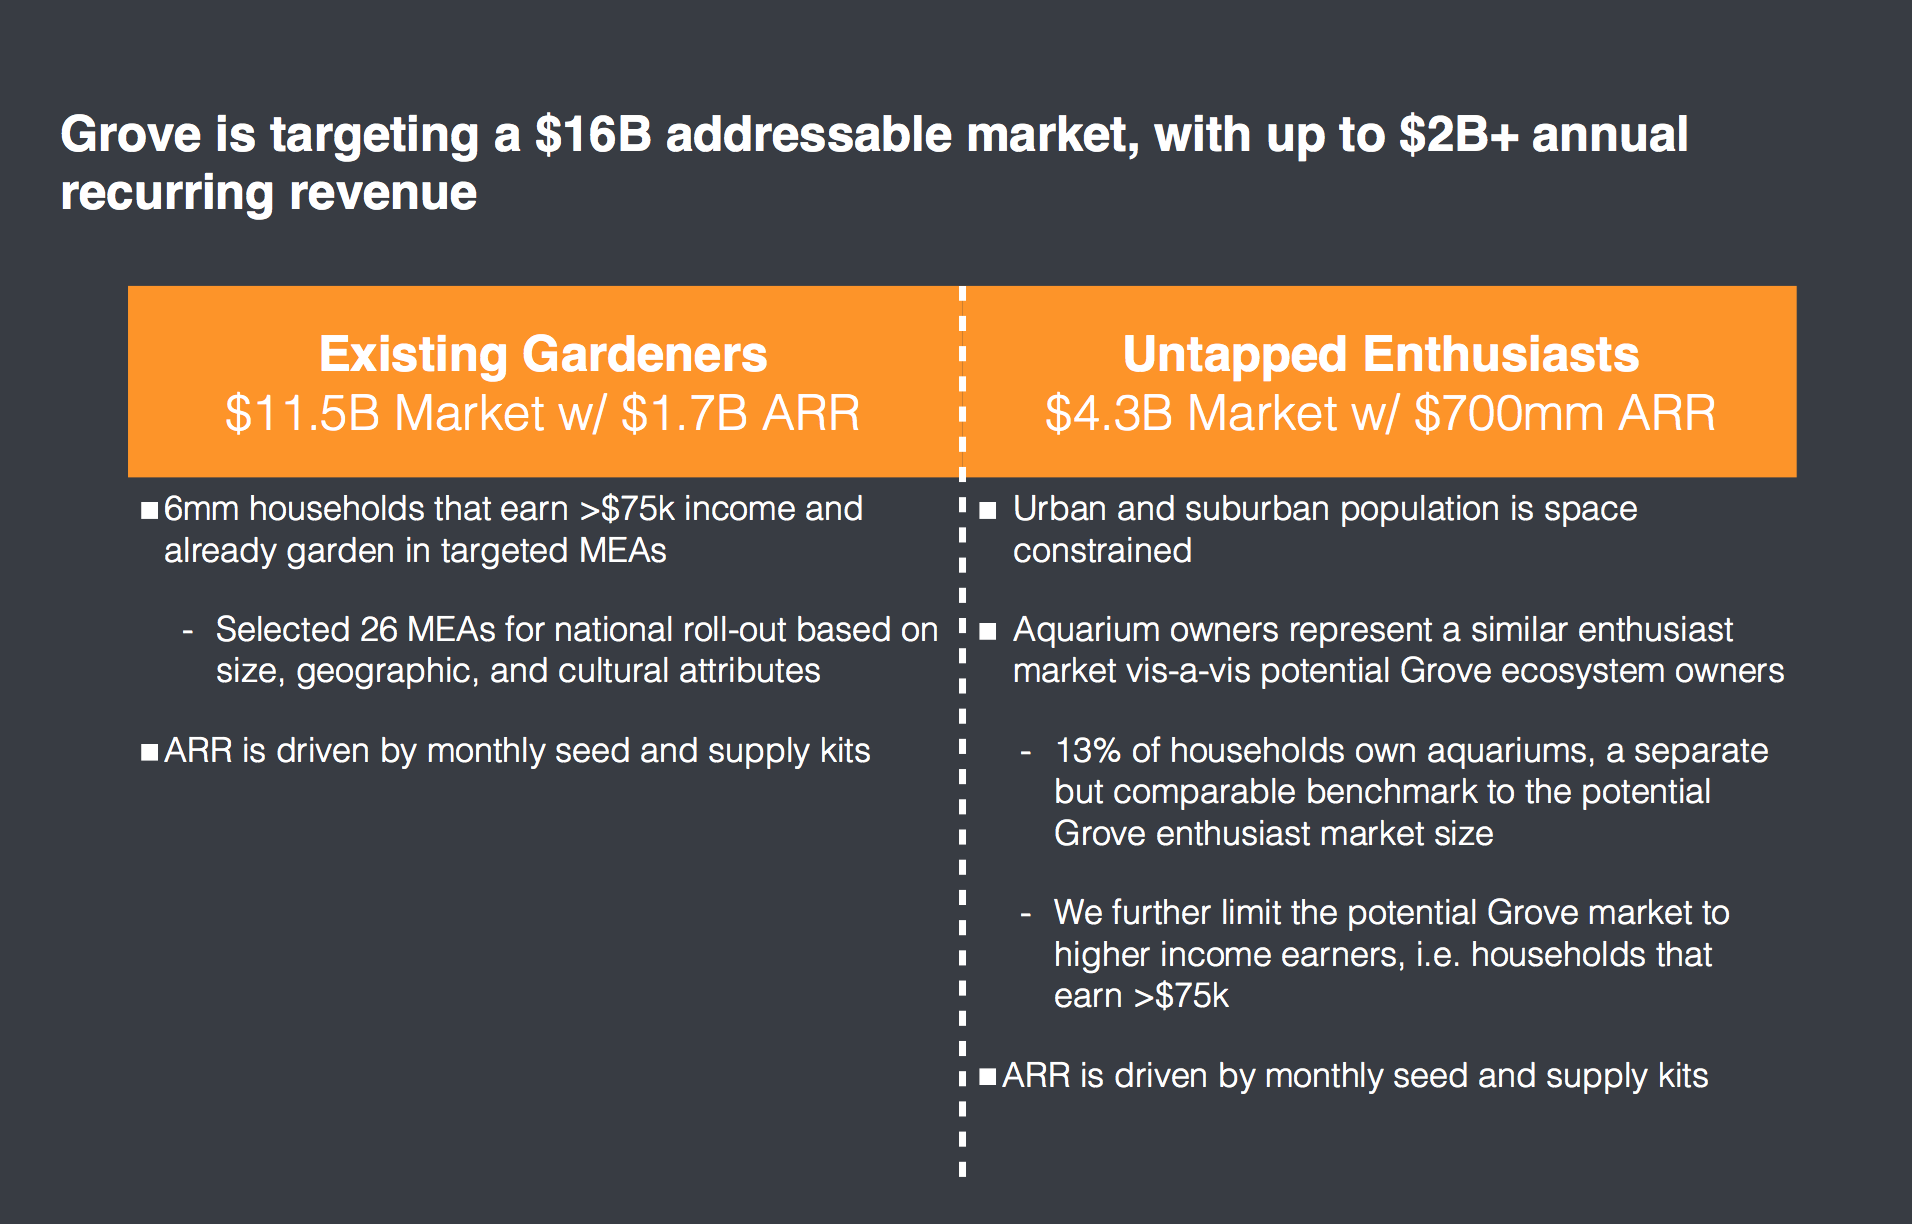 Personal Indoor Farming: Market Size and Exit Opportunities